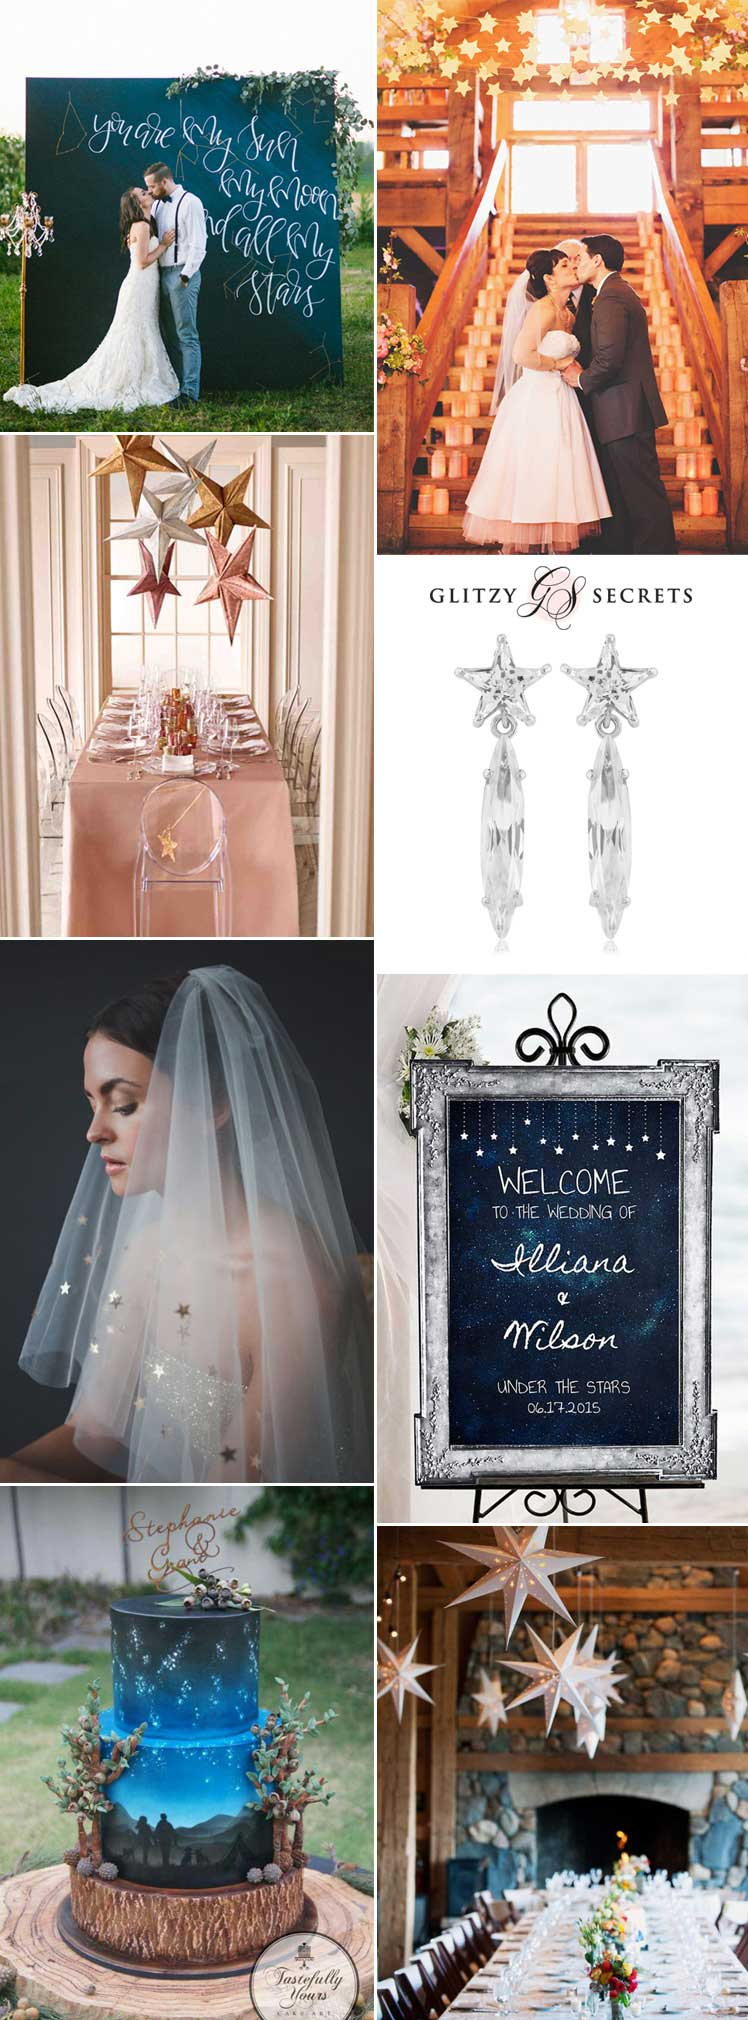 Inspiration for a star themed wedding day